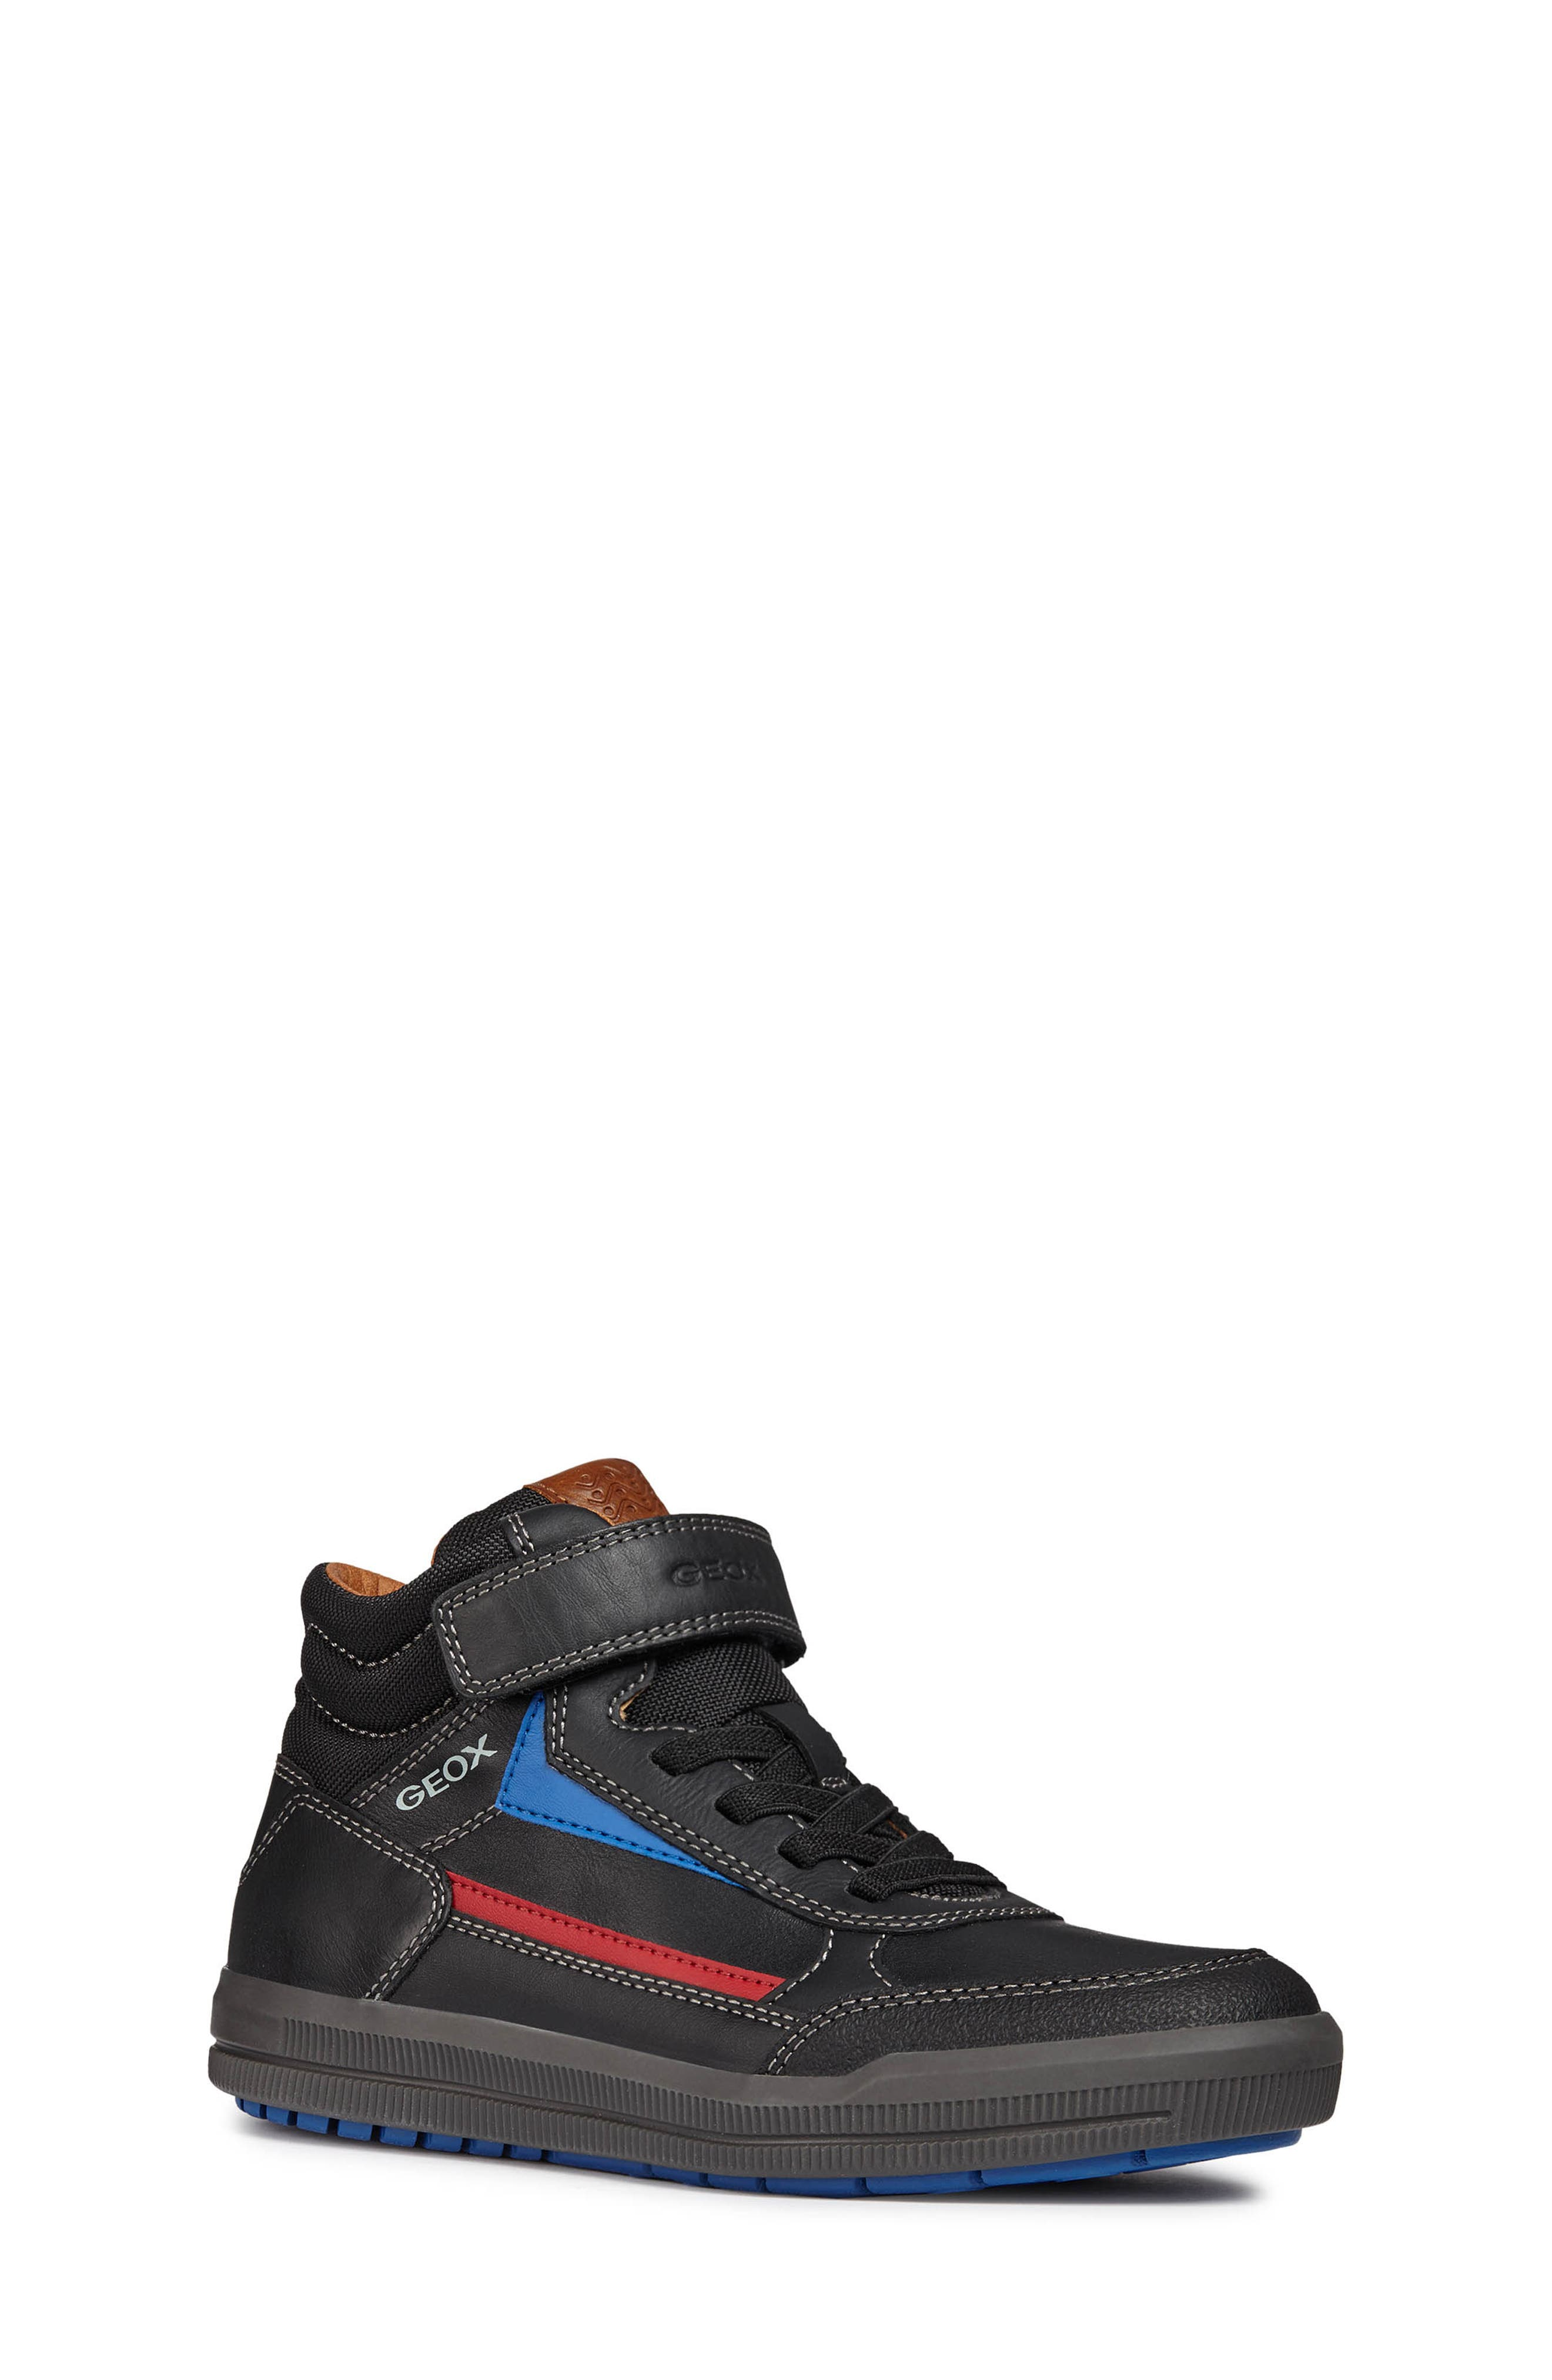 Arzach Mid Top Sneaker,                             Main thumbnail 1, color,                             BLACK/RED